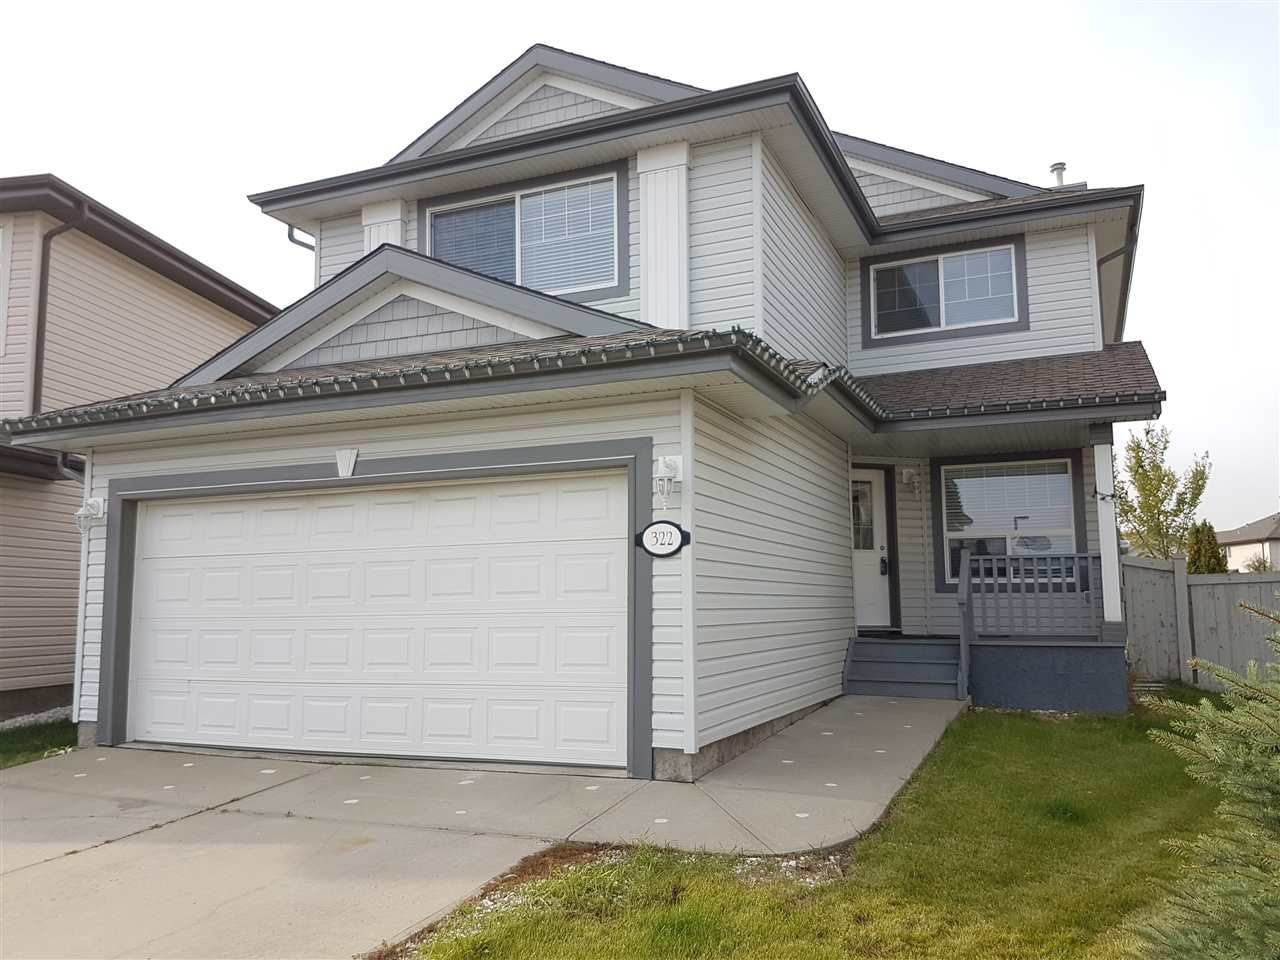 Main Photo: 322 GIBB Close in Edmonton: Zone 58 House for sale : MLS®# E4130378